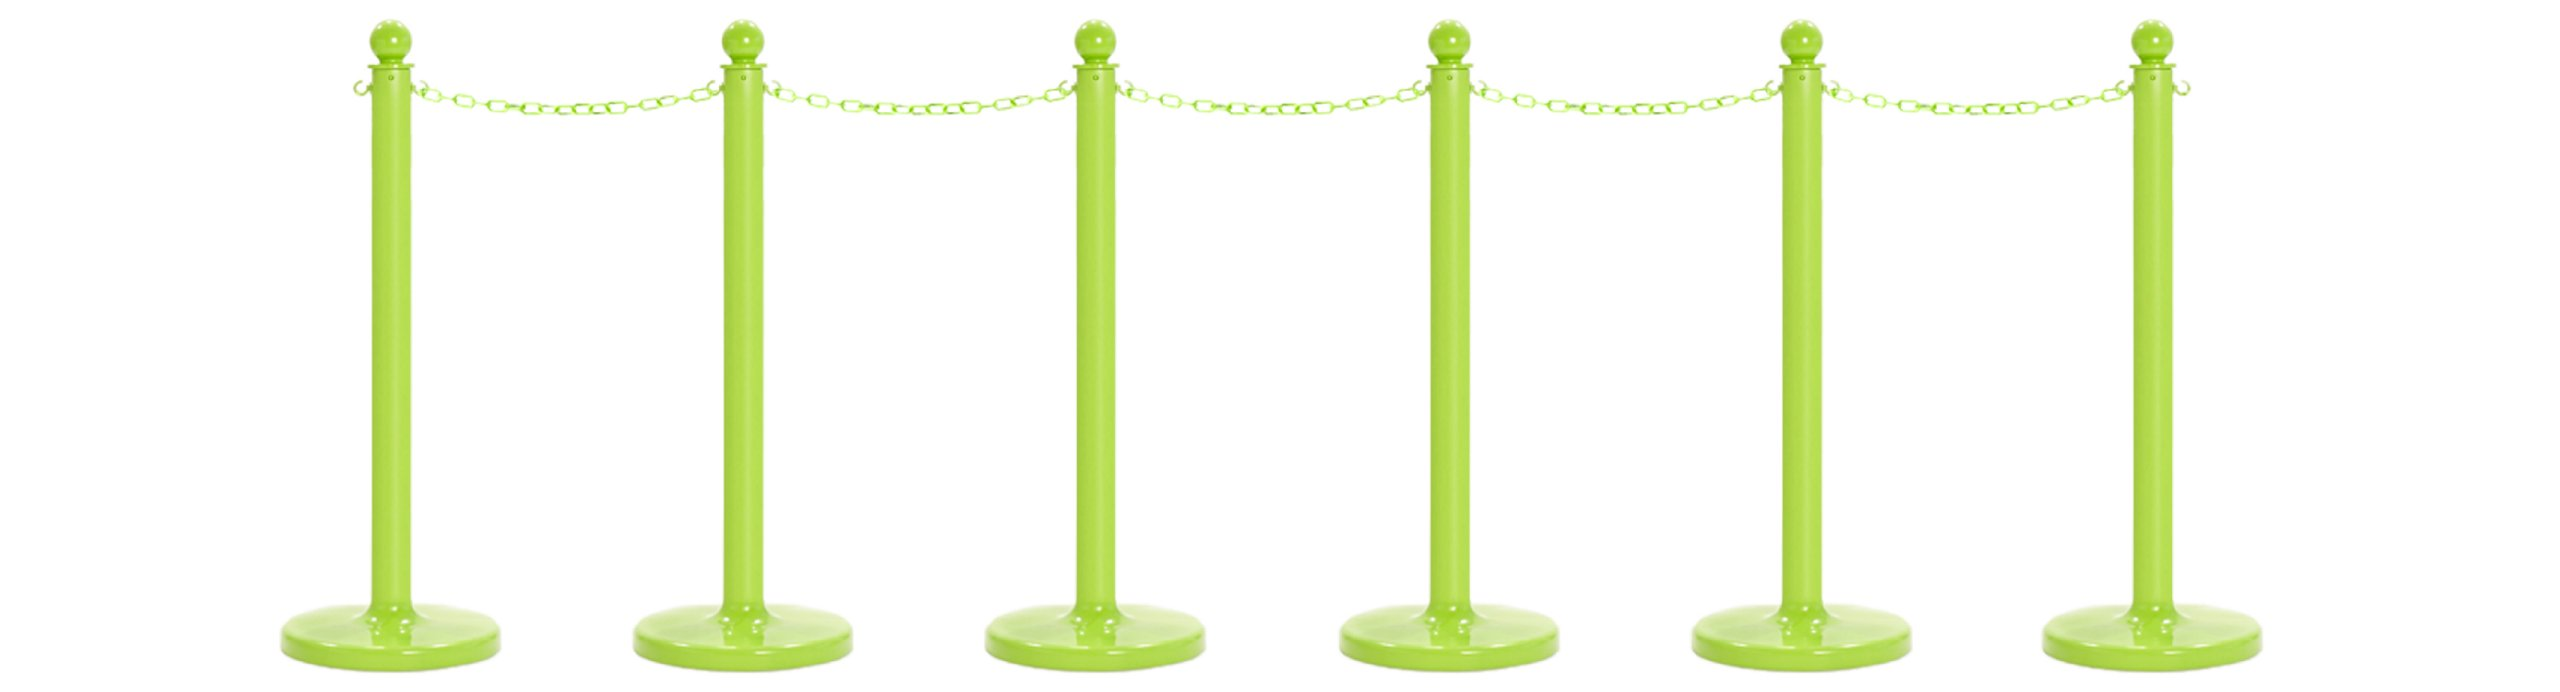 Mr. Chain 71114-6 Safety Green Plastic Stanchion Kit with 50' of 2'' link Chain and C-Hooks, Pack of 6